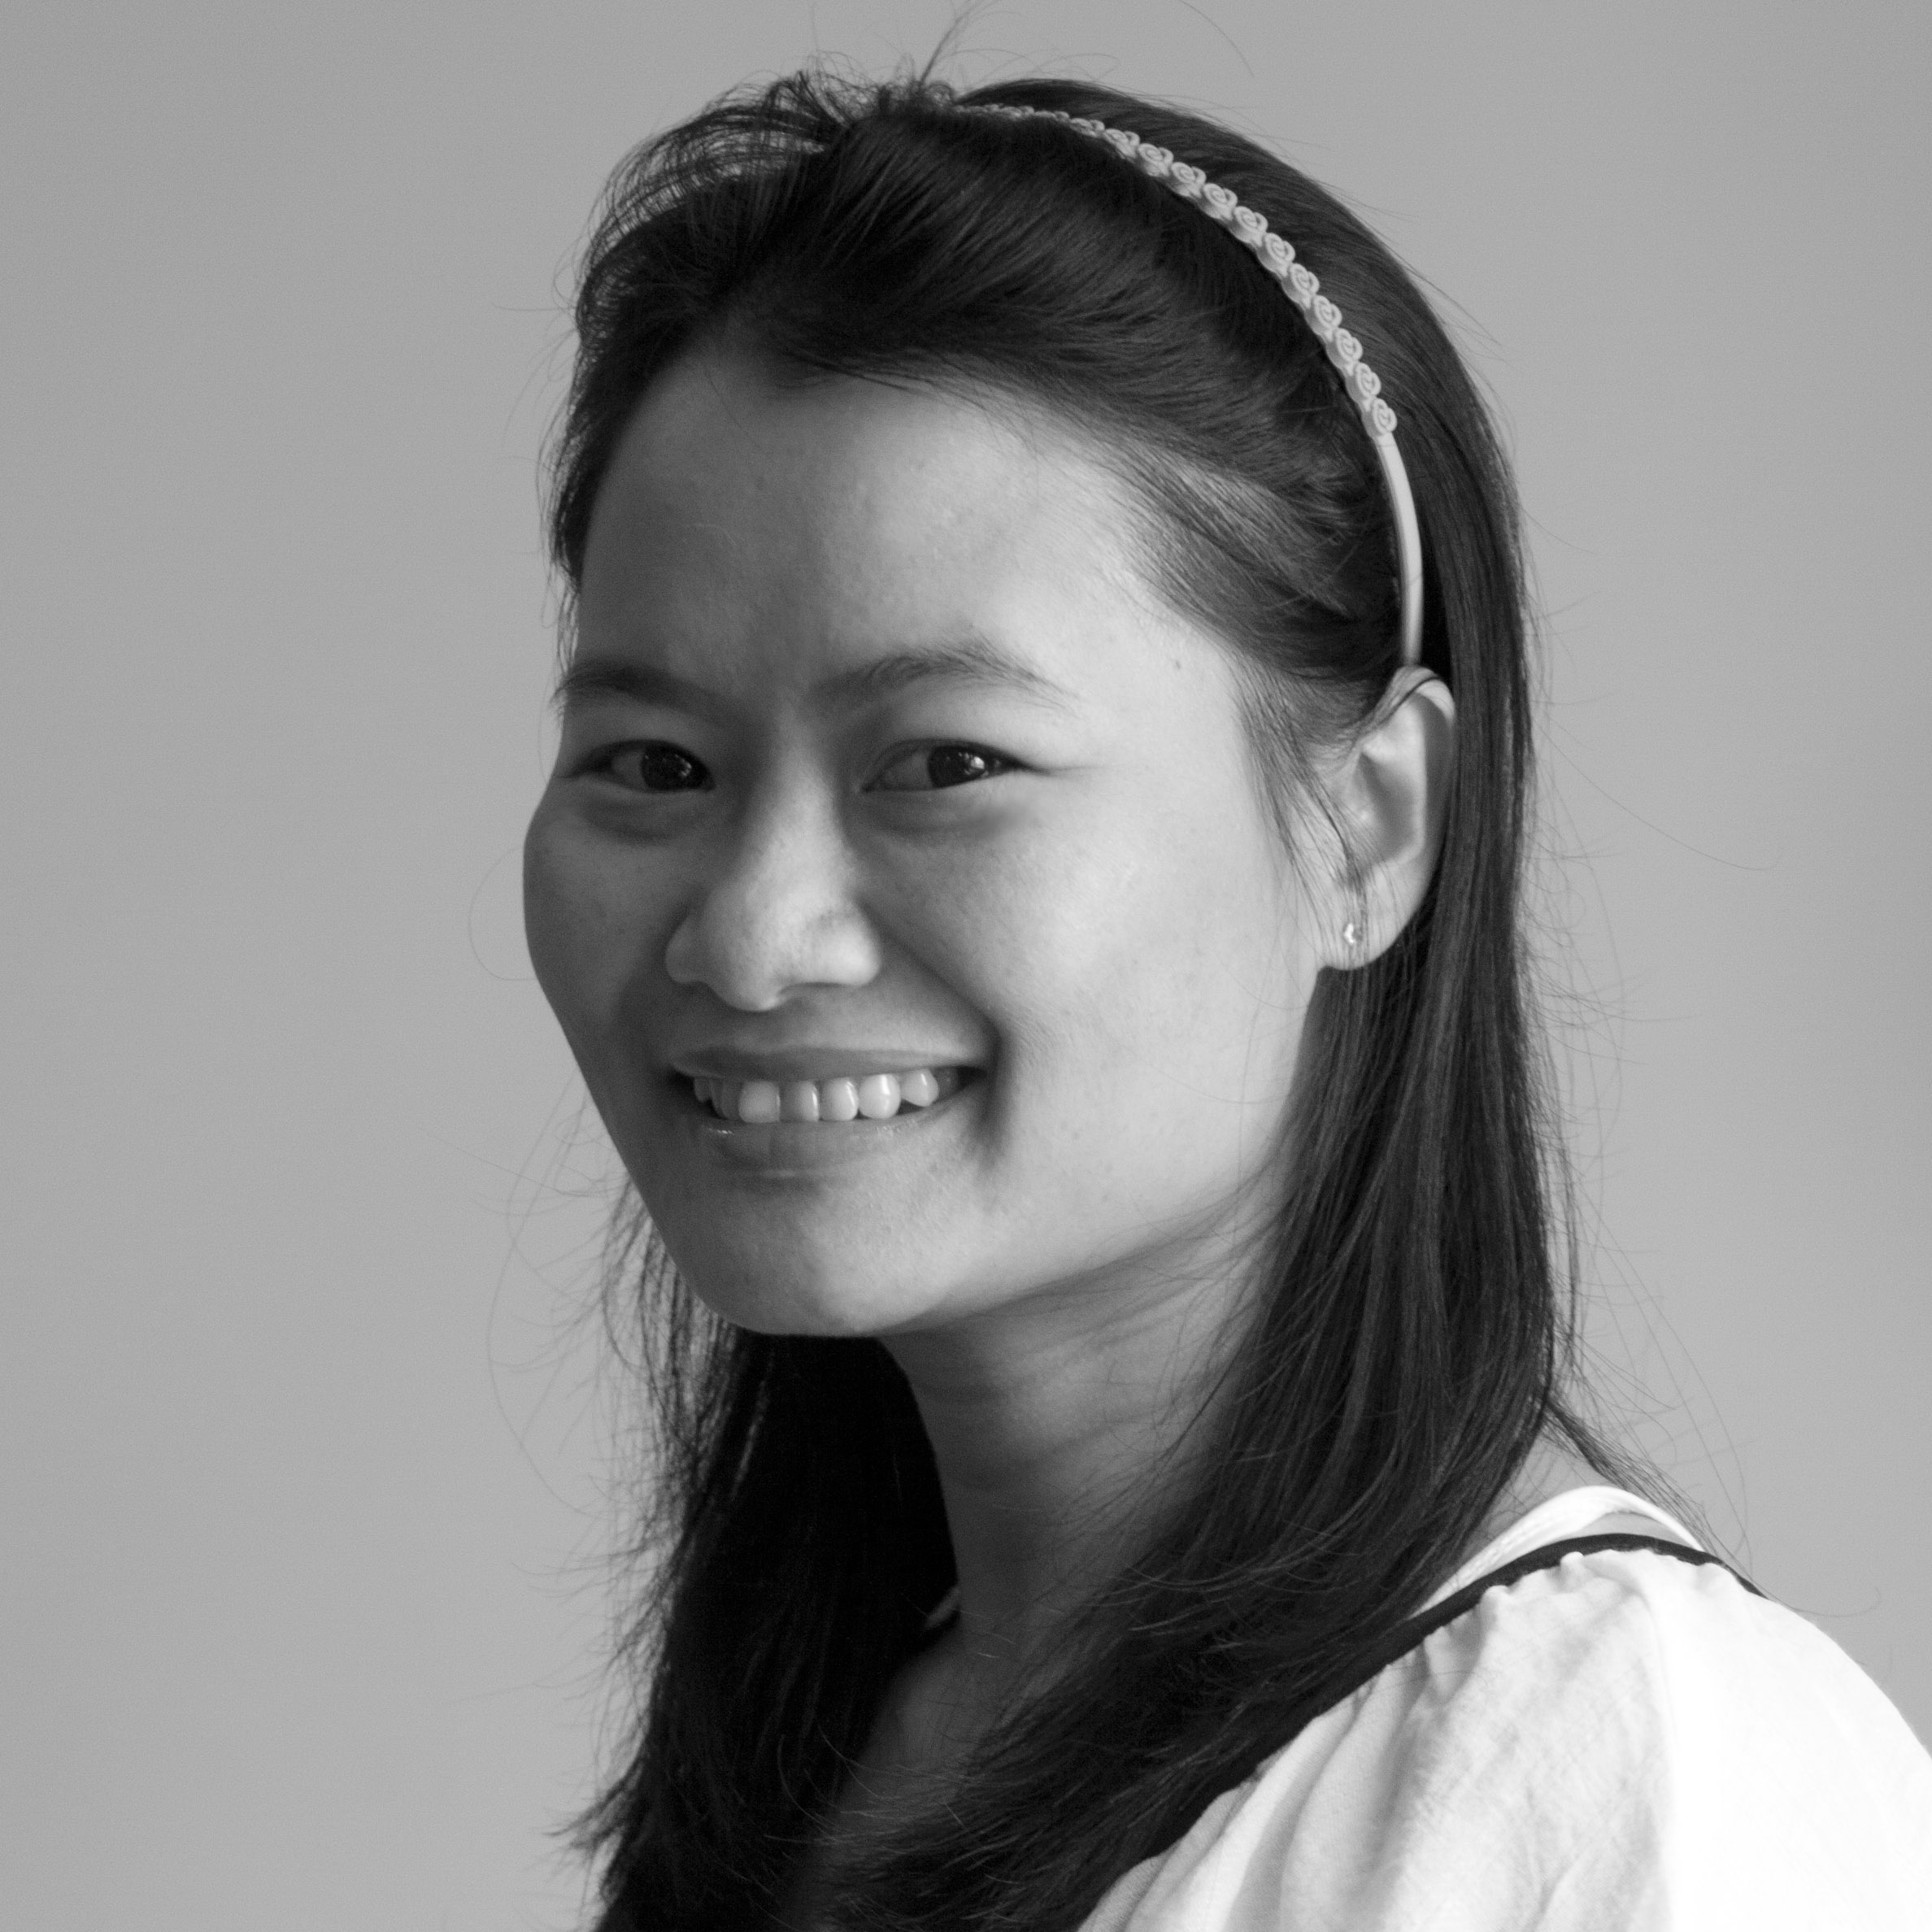 Media / ICT experts – Diem Phuc Le